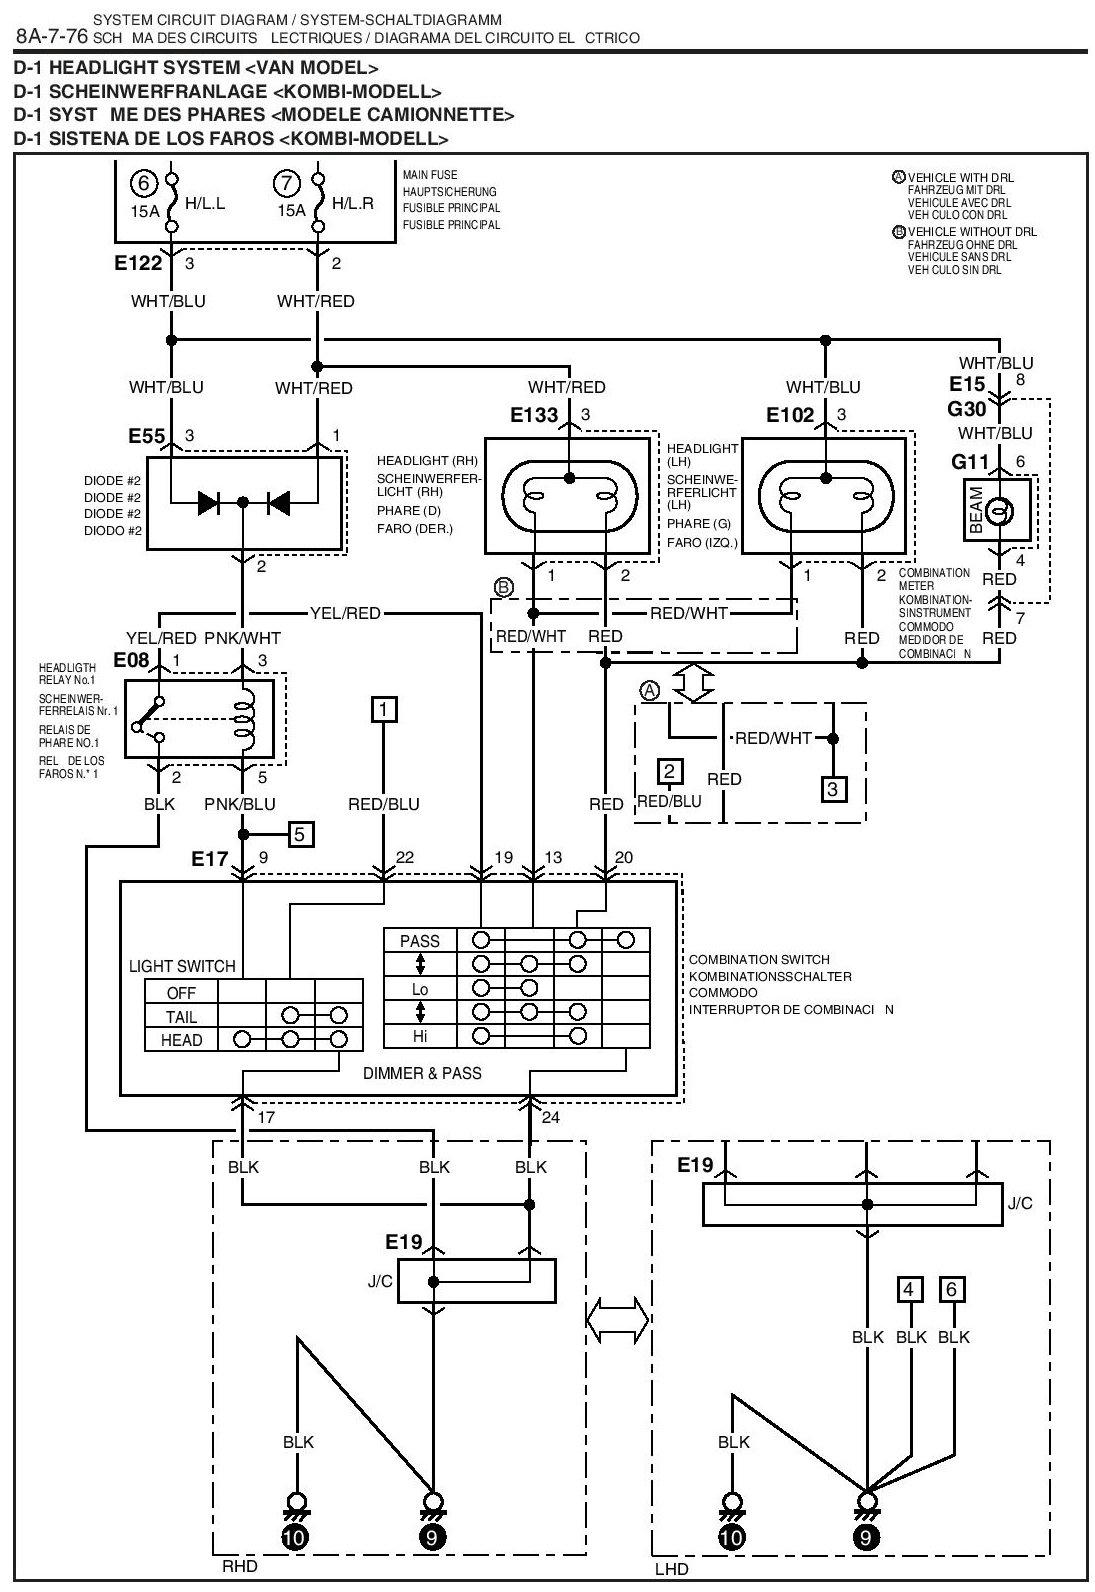 8qotqex62c6bikqzg?resize\=665%2C967 suzuki jimny towbar wiring diagram chopper wiring diagram \u2022 45 63  at crackthecode.co